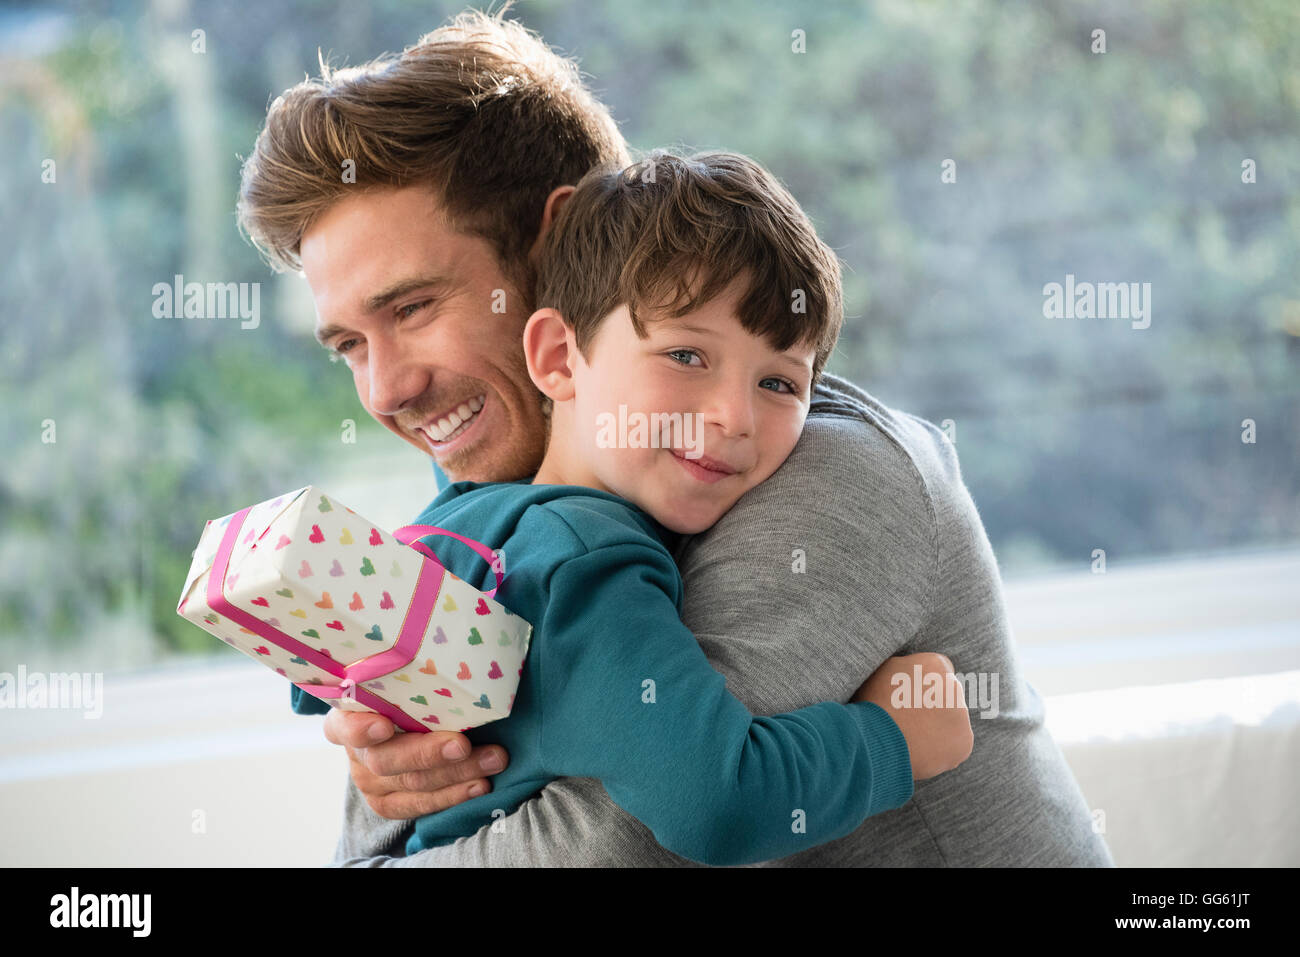 Loving Father And Son Hugging With Birthday Gift